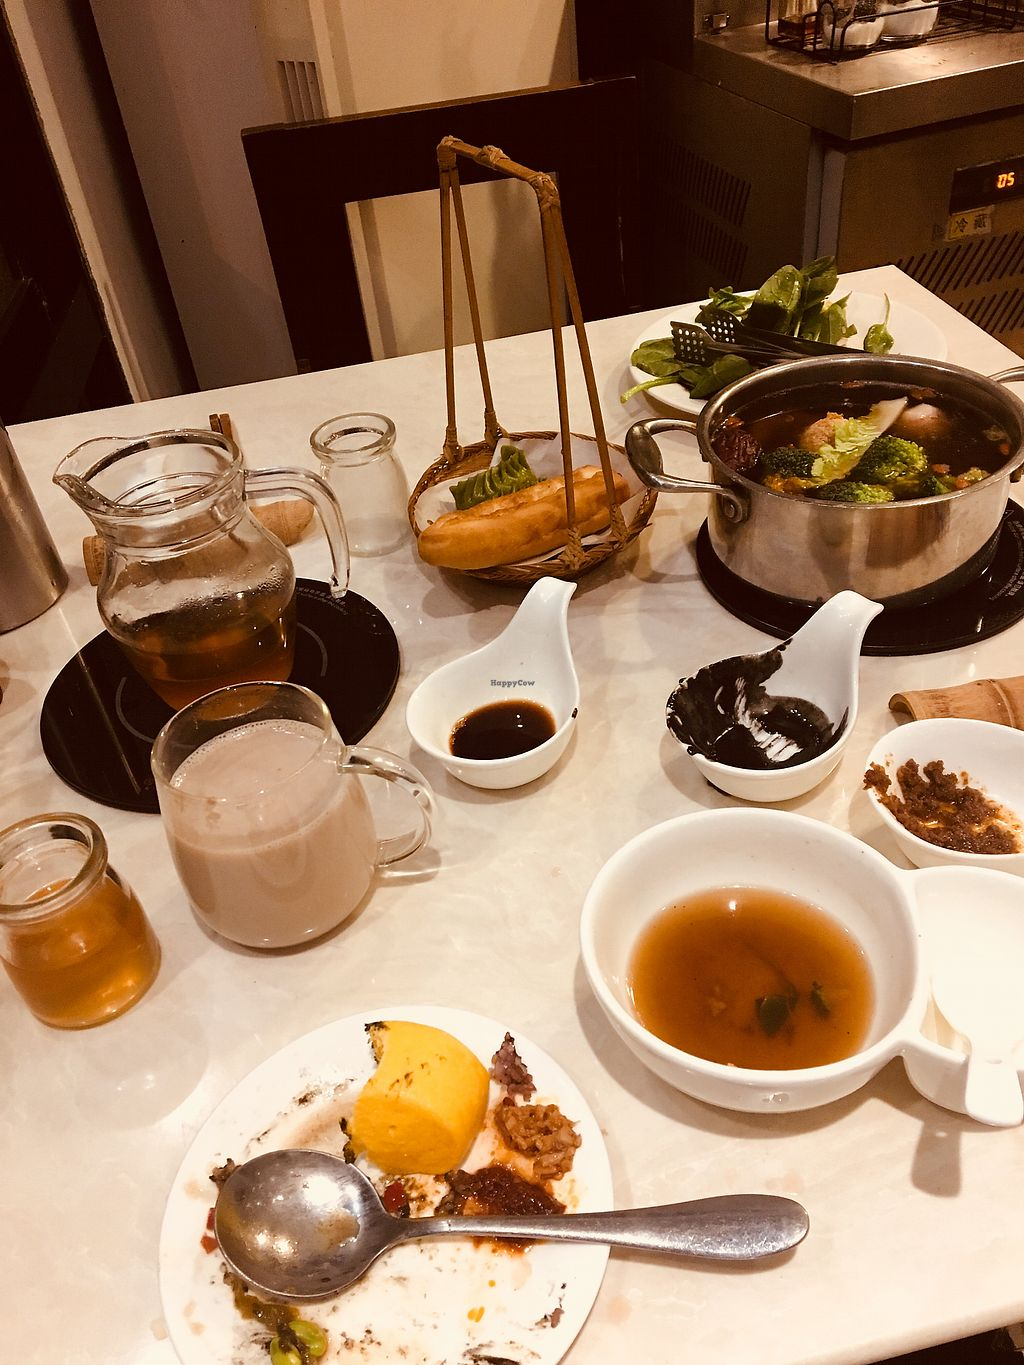 """Photo of Gan Ye Zi Hotpot - Frankie's Kitchen  by <a href=""""/members/profile/gordico"""">gordico</a> <br/>Hot pot+ Buffet + Drinks ? <br/> November 25, 2017  - <a href='/contact/abuse/image/30294/329004'>Report</a>"""